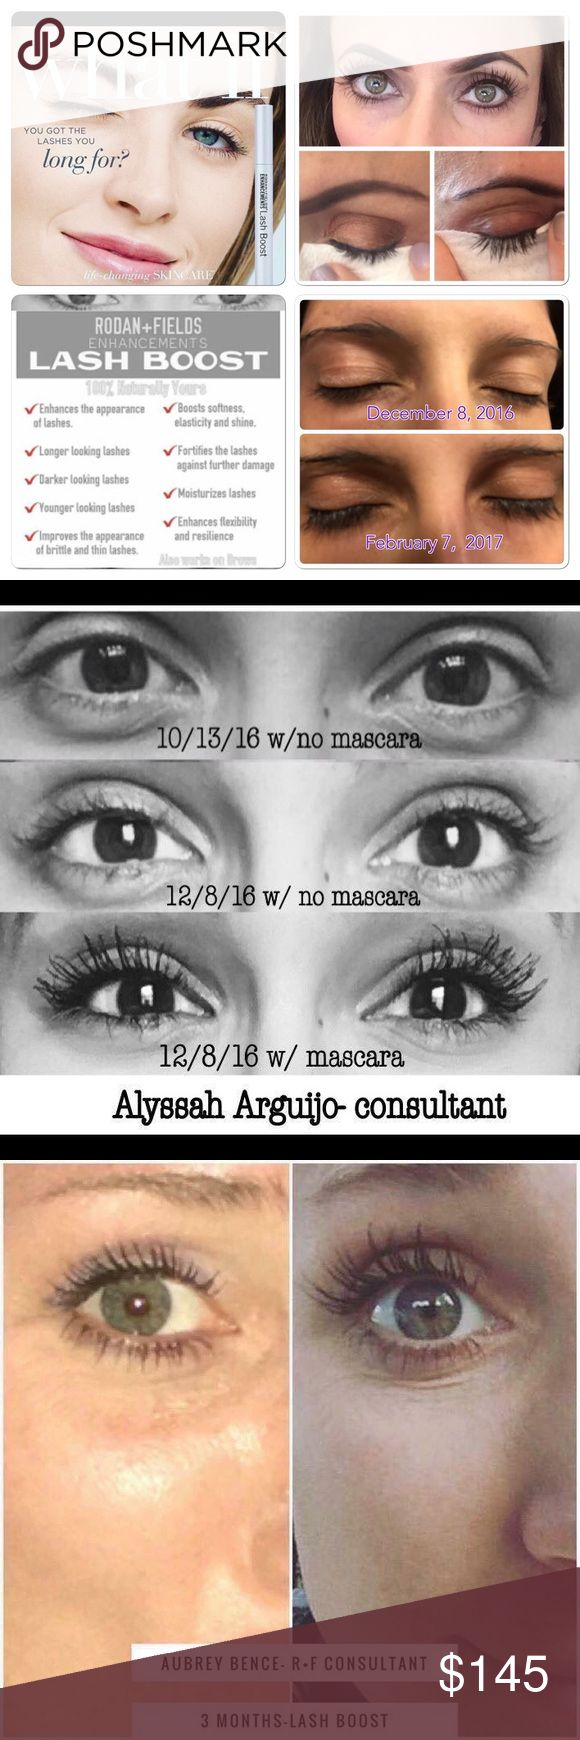 Rodan and Fields lash boost! Stop destroying your lashes with extension. Lash boost gives you lashes that are 100% real and 100% your.  Tube last 60 days!  One swipe at night before bed each night is all you need.  My personal results at shown in the pictures as well. Price listed is with tax factored. If interested please message me, since I am a consultant we have to order through my website. rodan and fields  Makeup